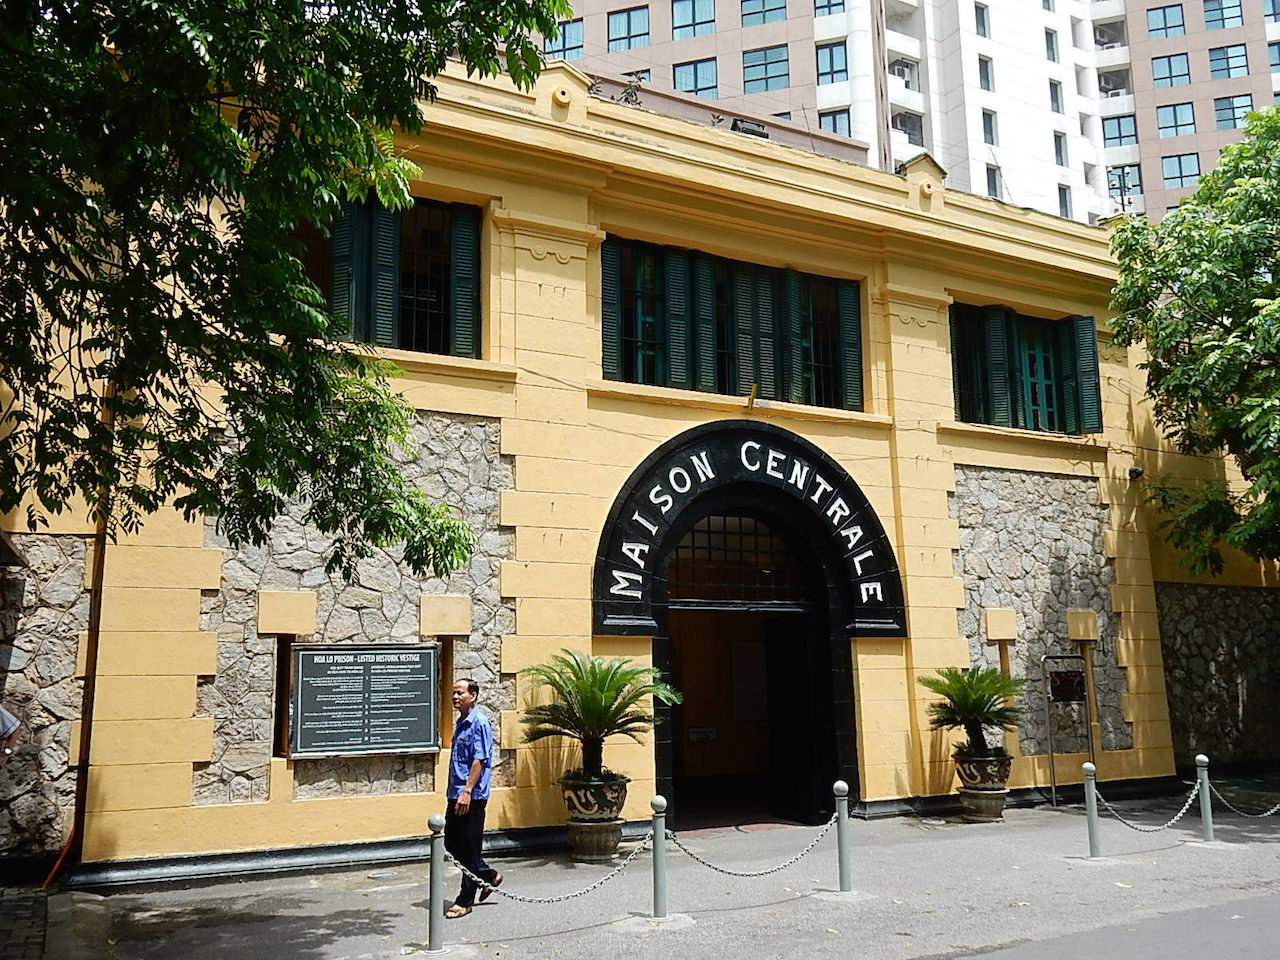 The entrance to the Hoa Lo Prison Museum (photo by Michael Coghlan/Flickr)